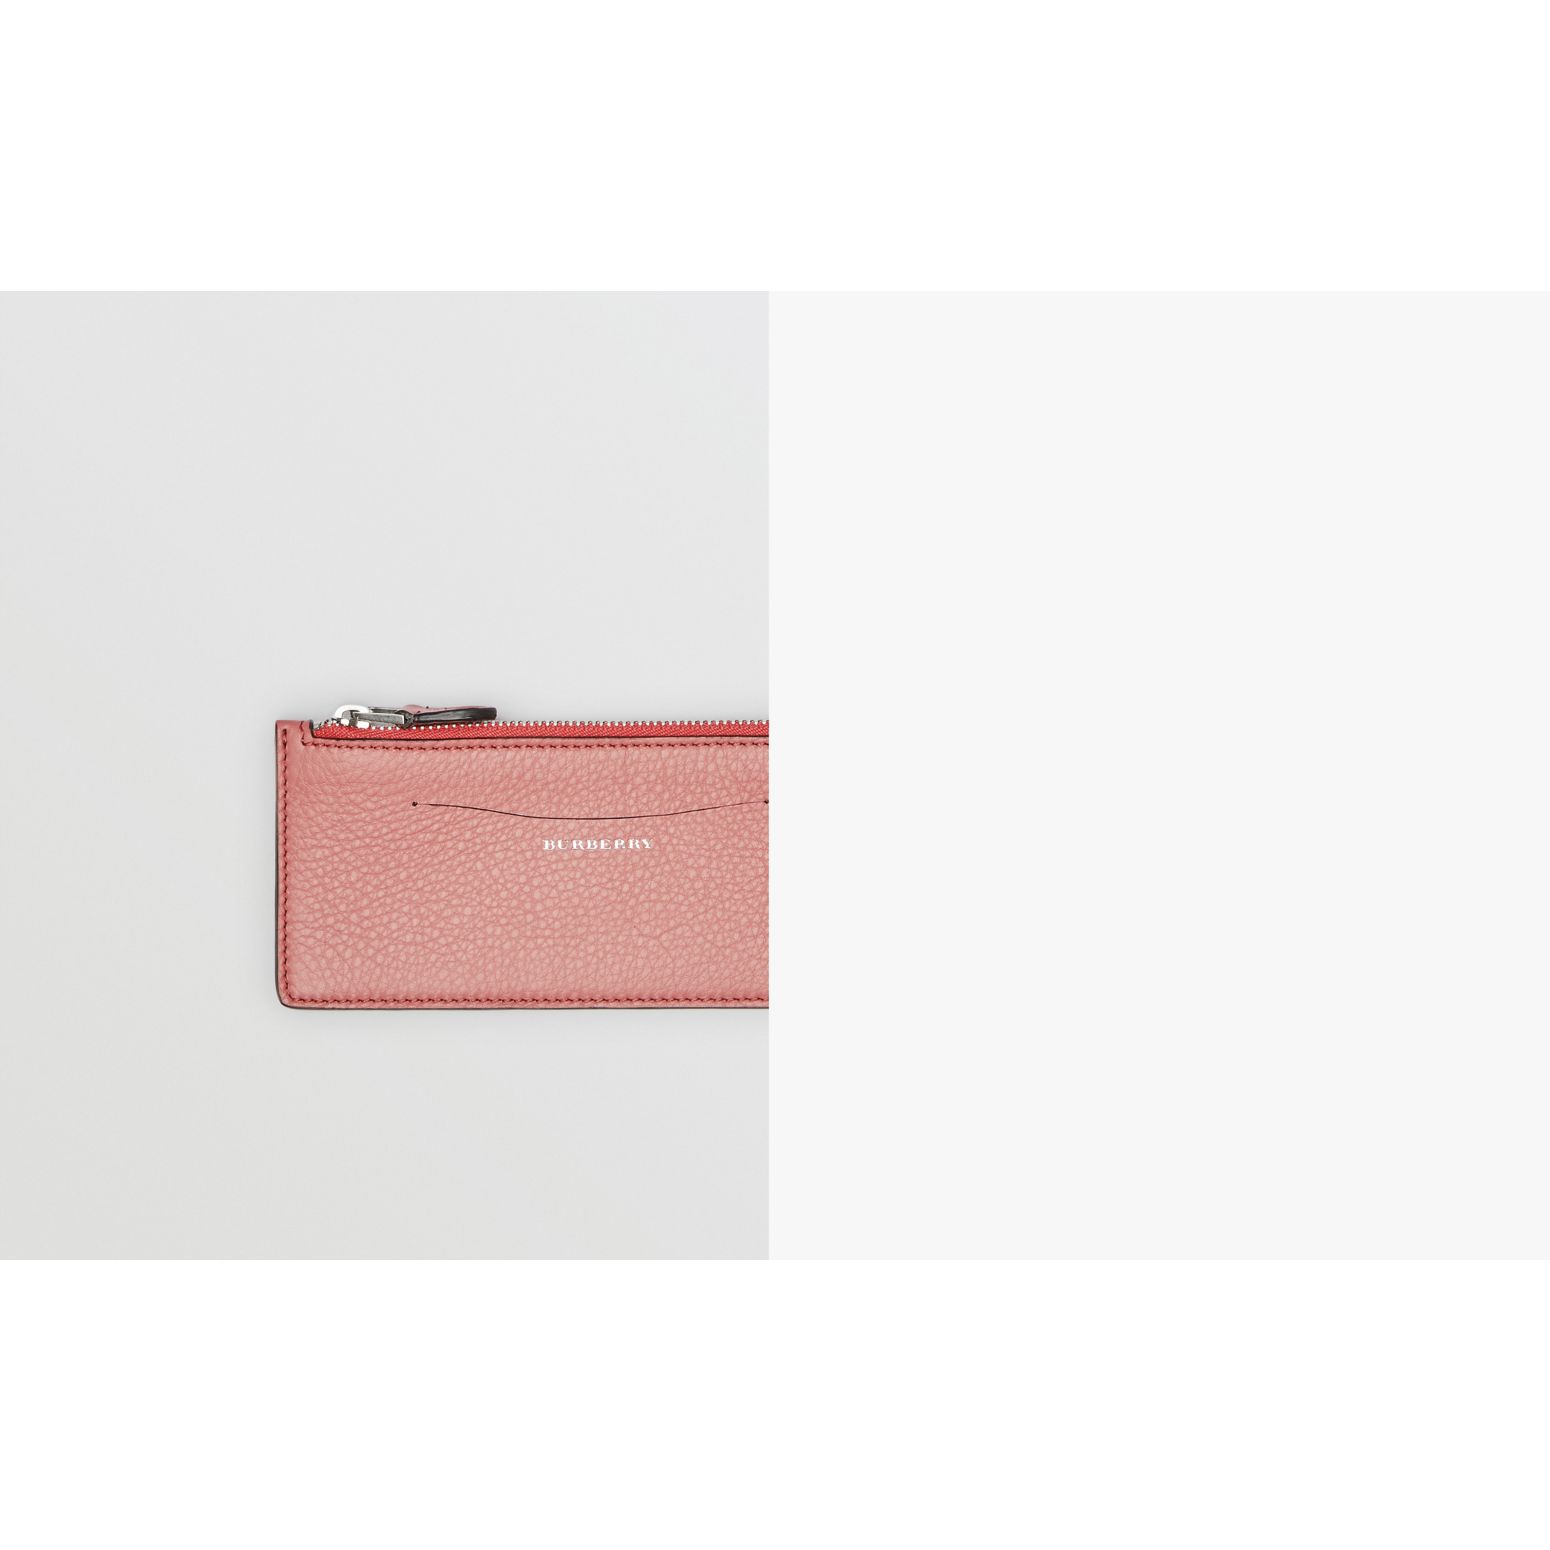 Two-tone Leather Ziparound Wallet and Coin Case in Dusty Rose - Women | Burberry United States - gallery image 1